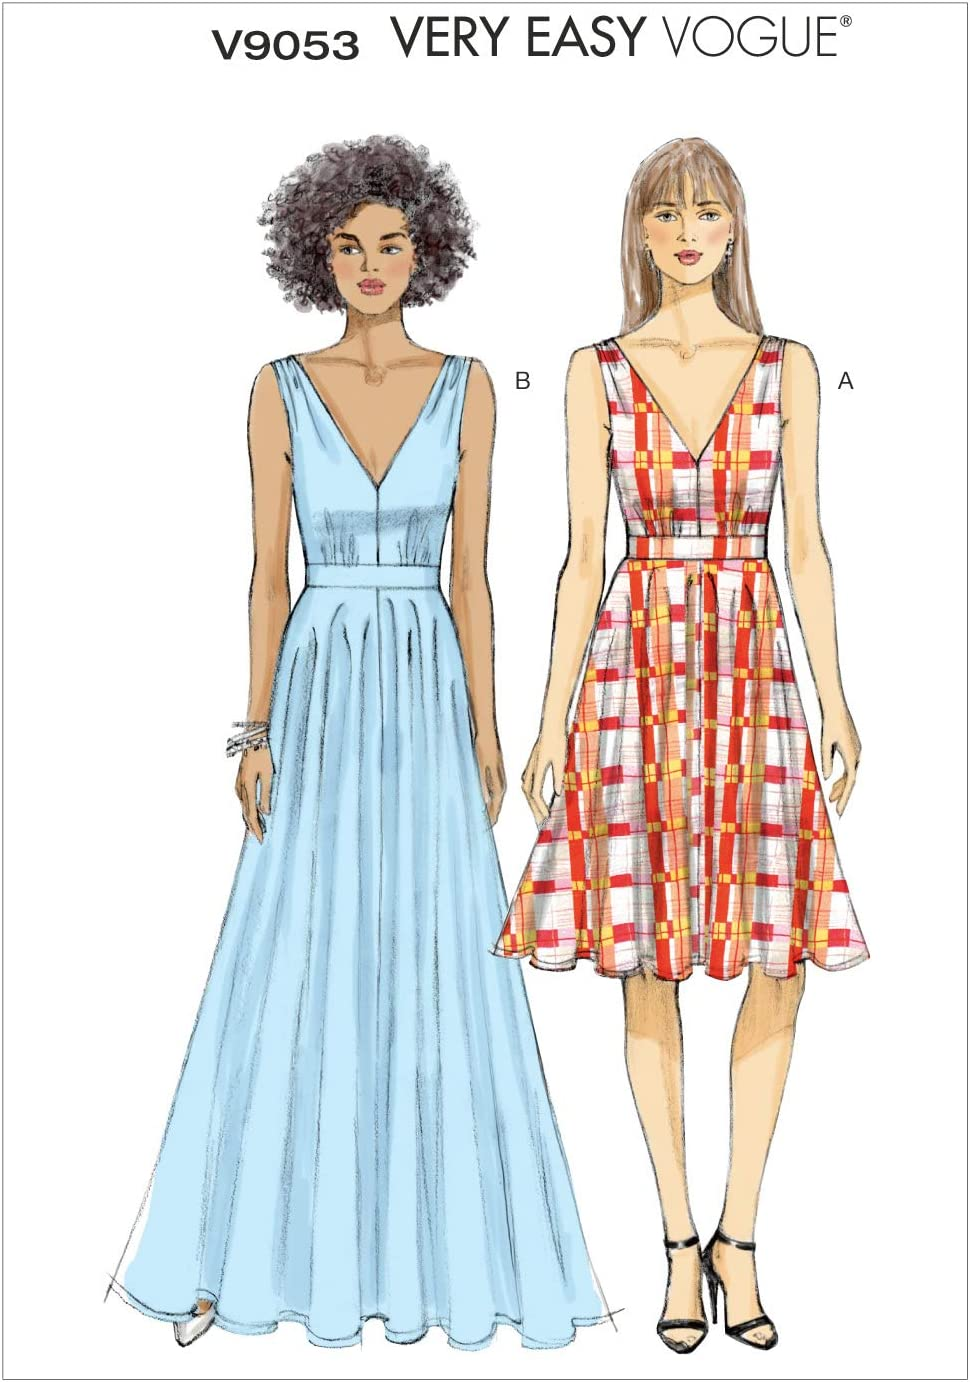 VOGUE Limited Special Price PATTERNS Popular brand in the world V9053 Misses' Dress A5 Template 6-8-10-1 Sewing